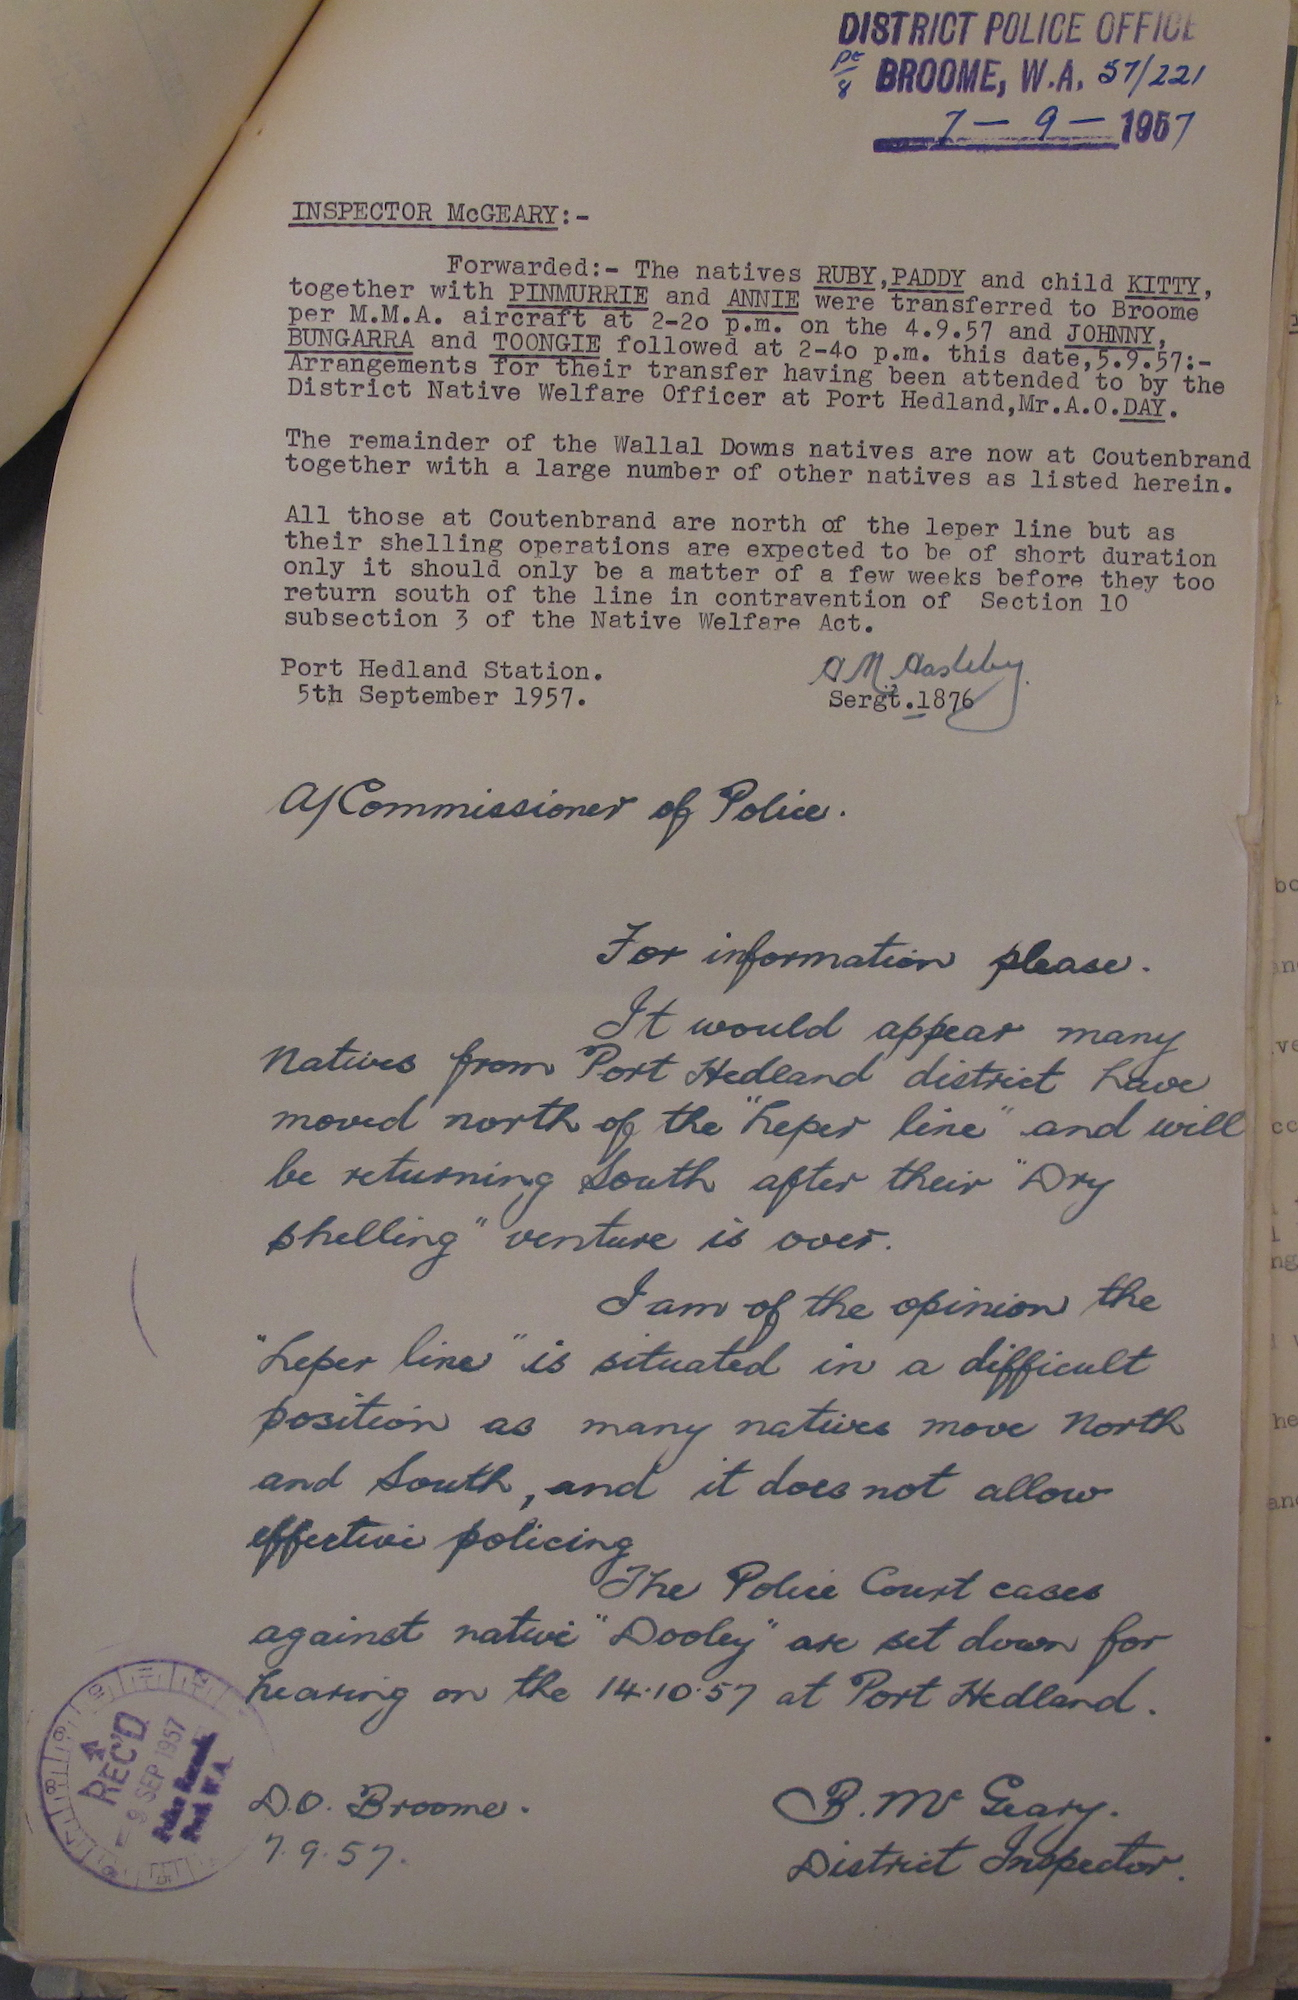 Sergeant H.M. Haselby to Inspector Bernie McGeary, 5 September 1957 and McGeary to A/Commissioner of Police, 7 September 1957